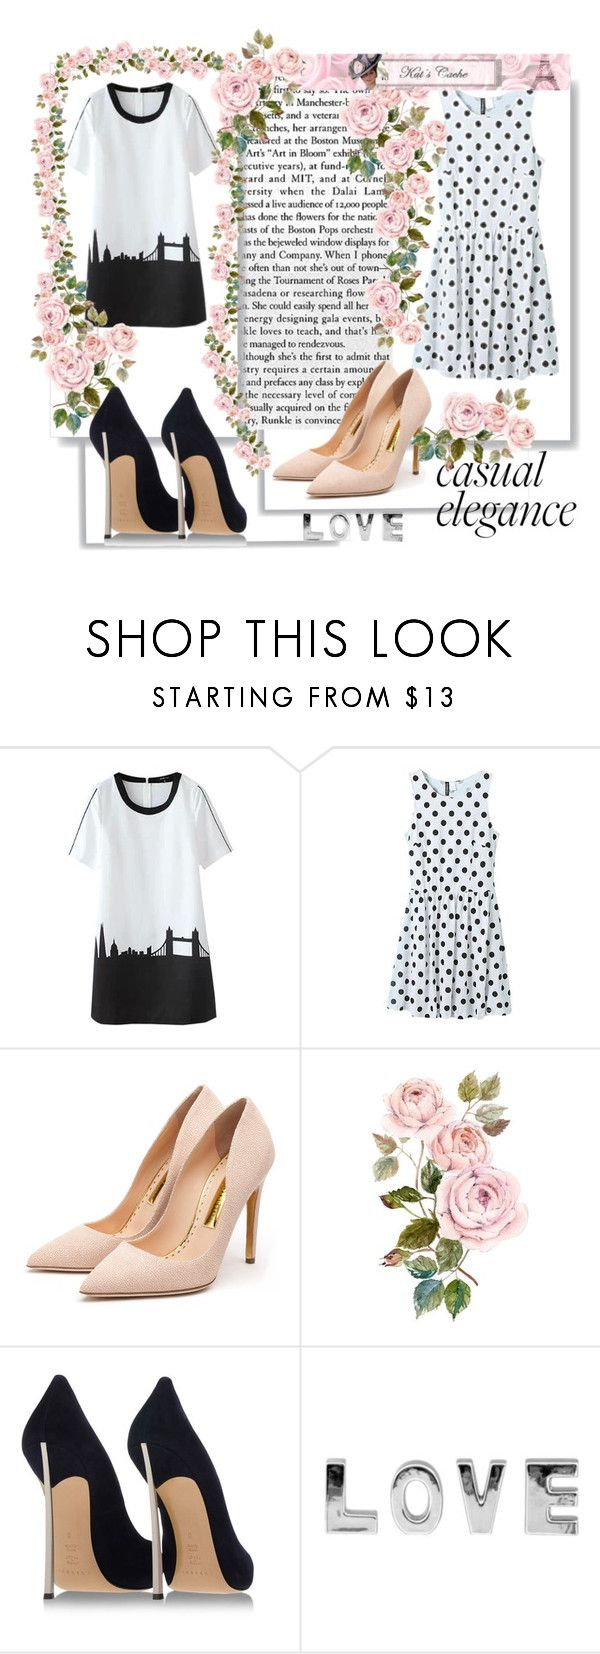 """Beautifulhalo 43"" by denisa-kulanic ❤ liked on Polyvore featuring Rupert Sanderson, Casadei, women's clothing, women, female, woman, misses, juniors, beautifulhalo and bhalo"